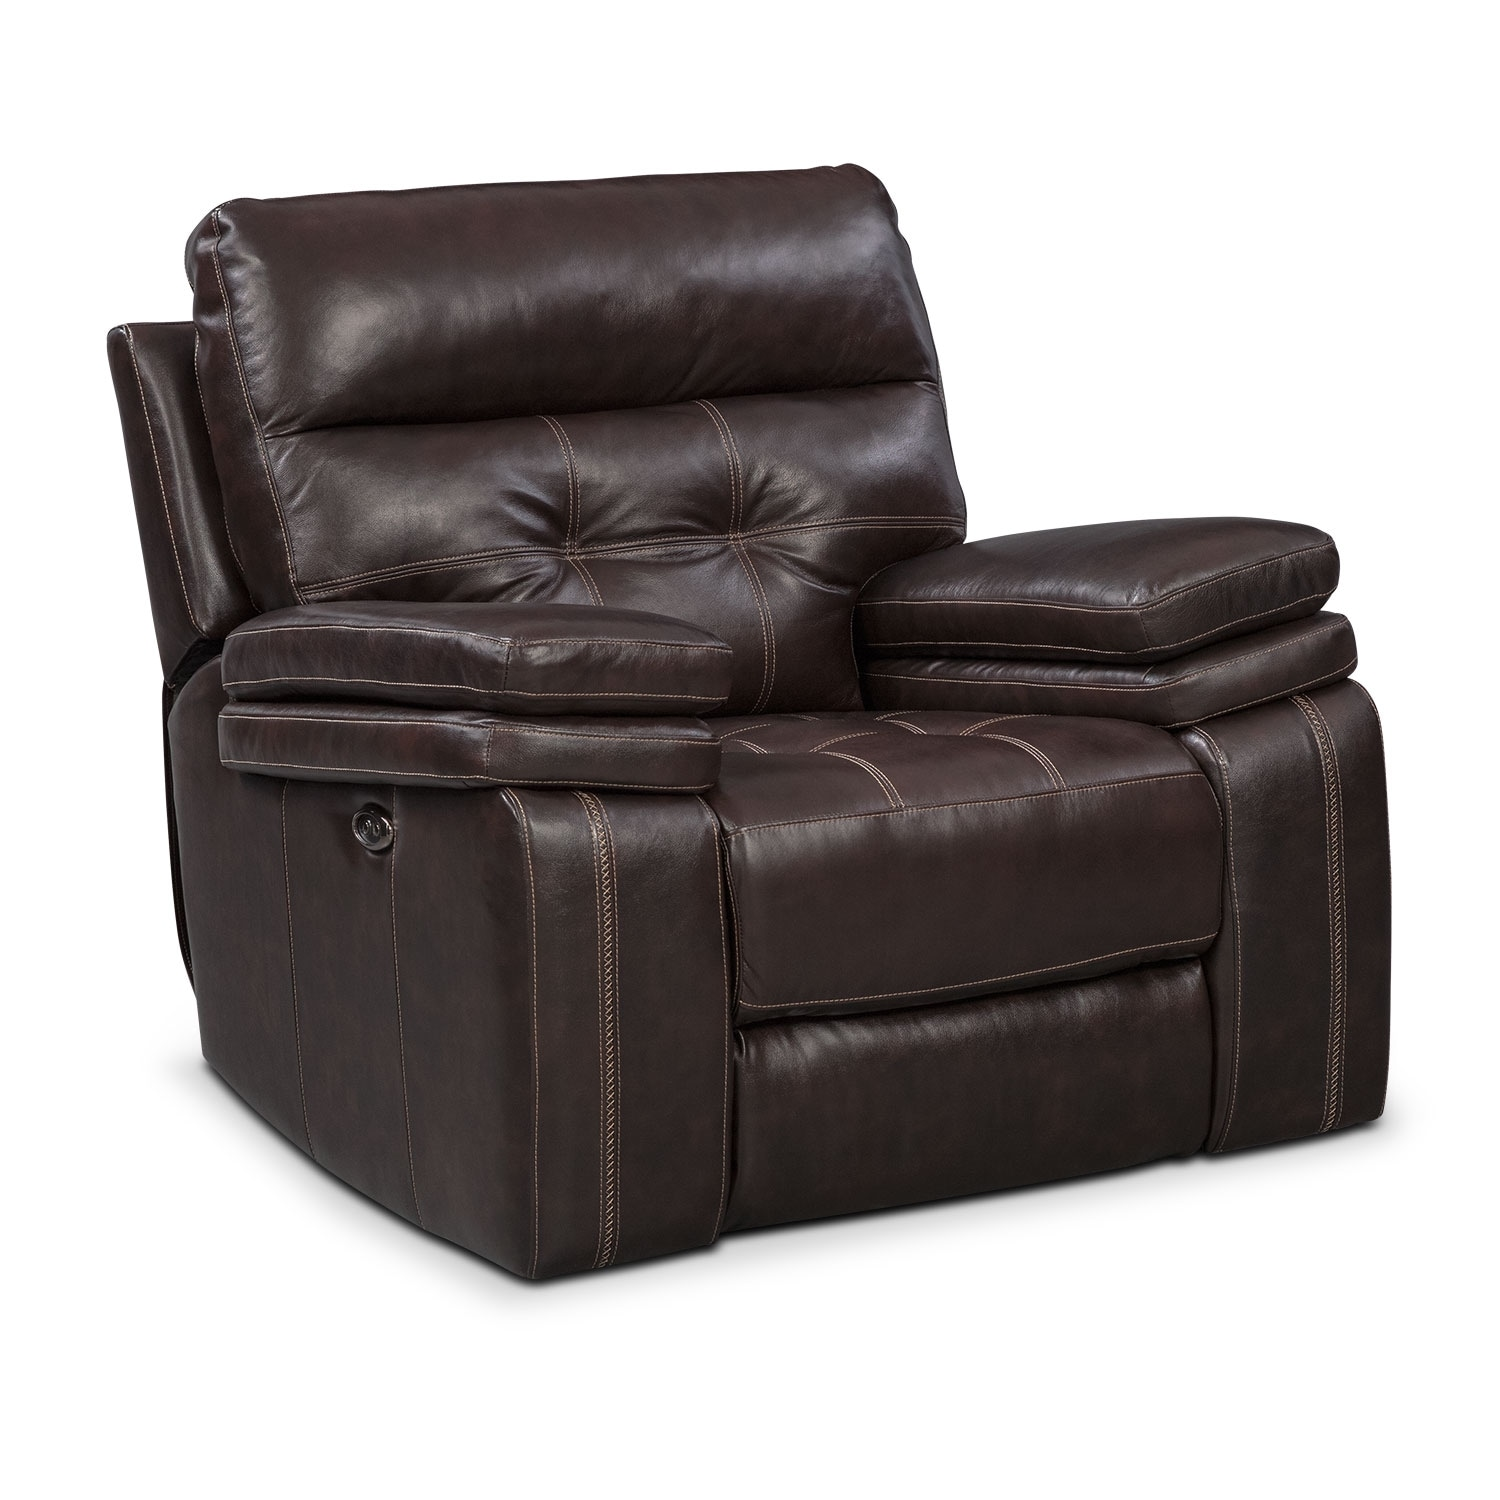 Living Room Furniture - Brisco Power Glider Recliner